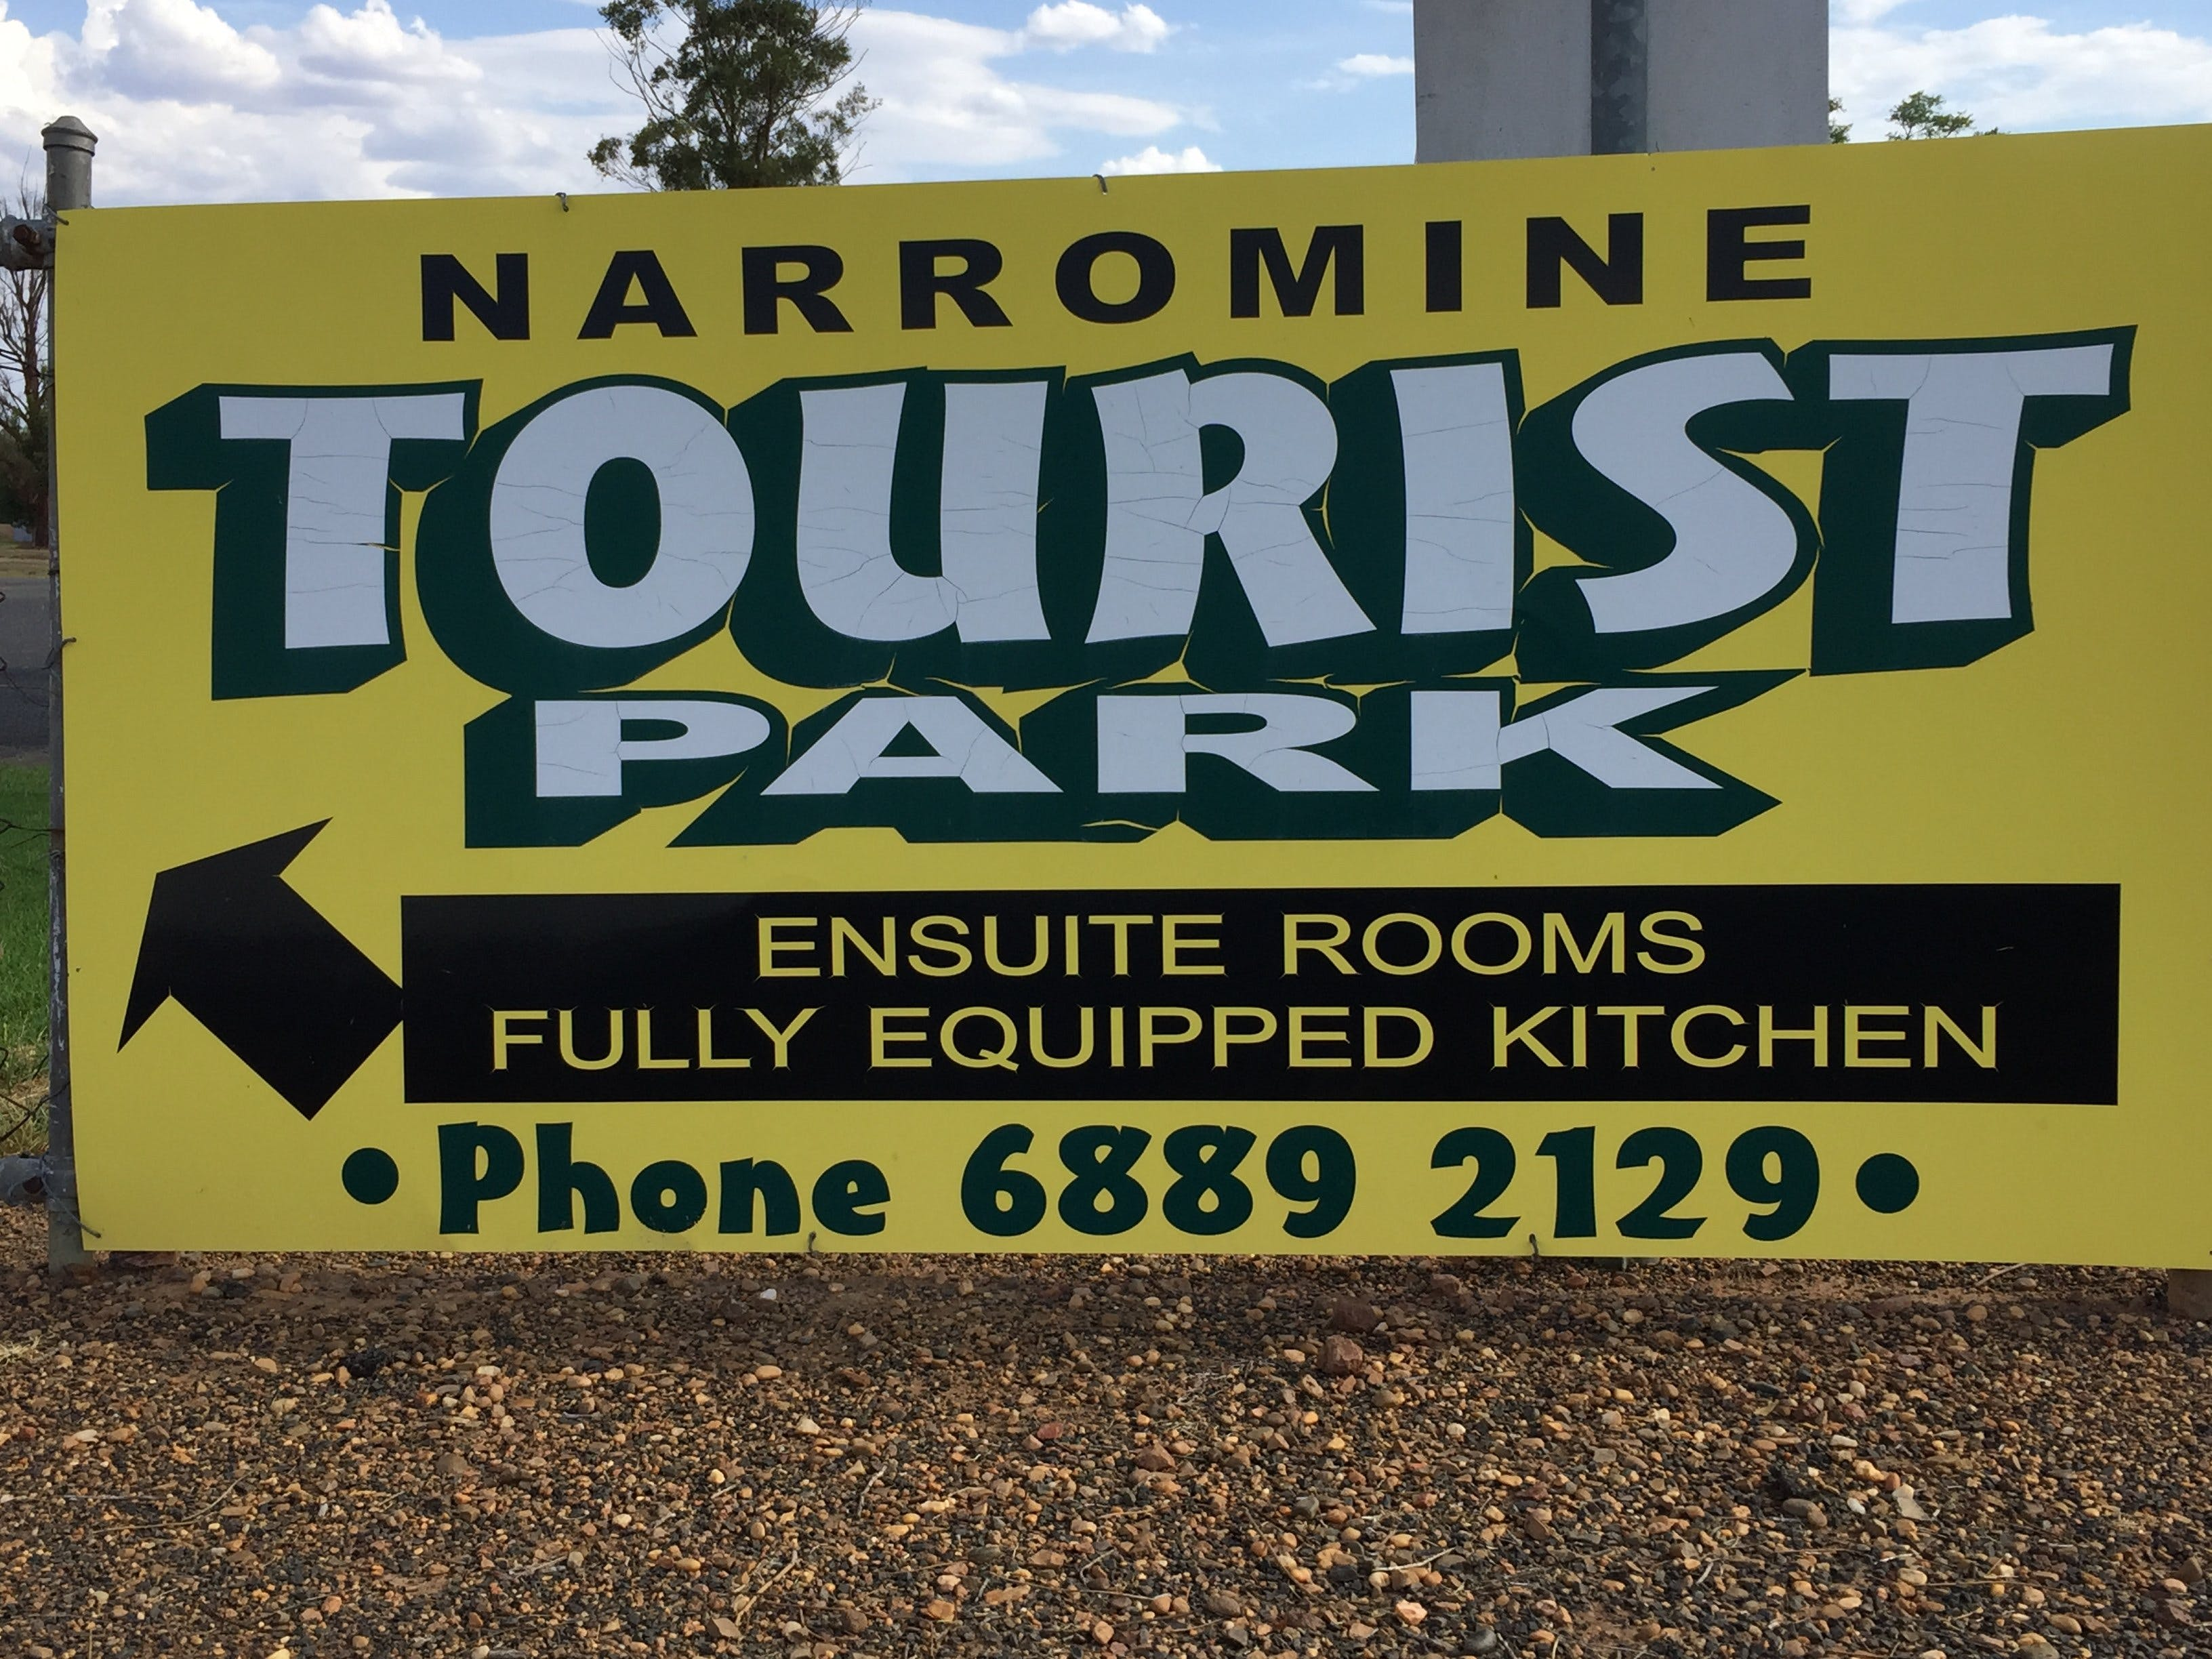 Narromine Tourist Park and Motel - Accommodation Resorts